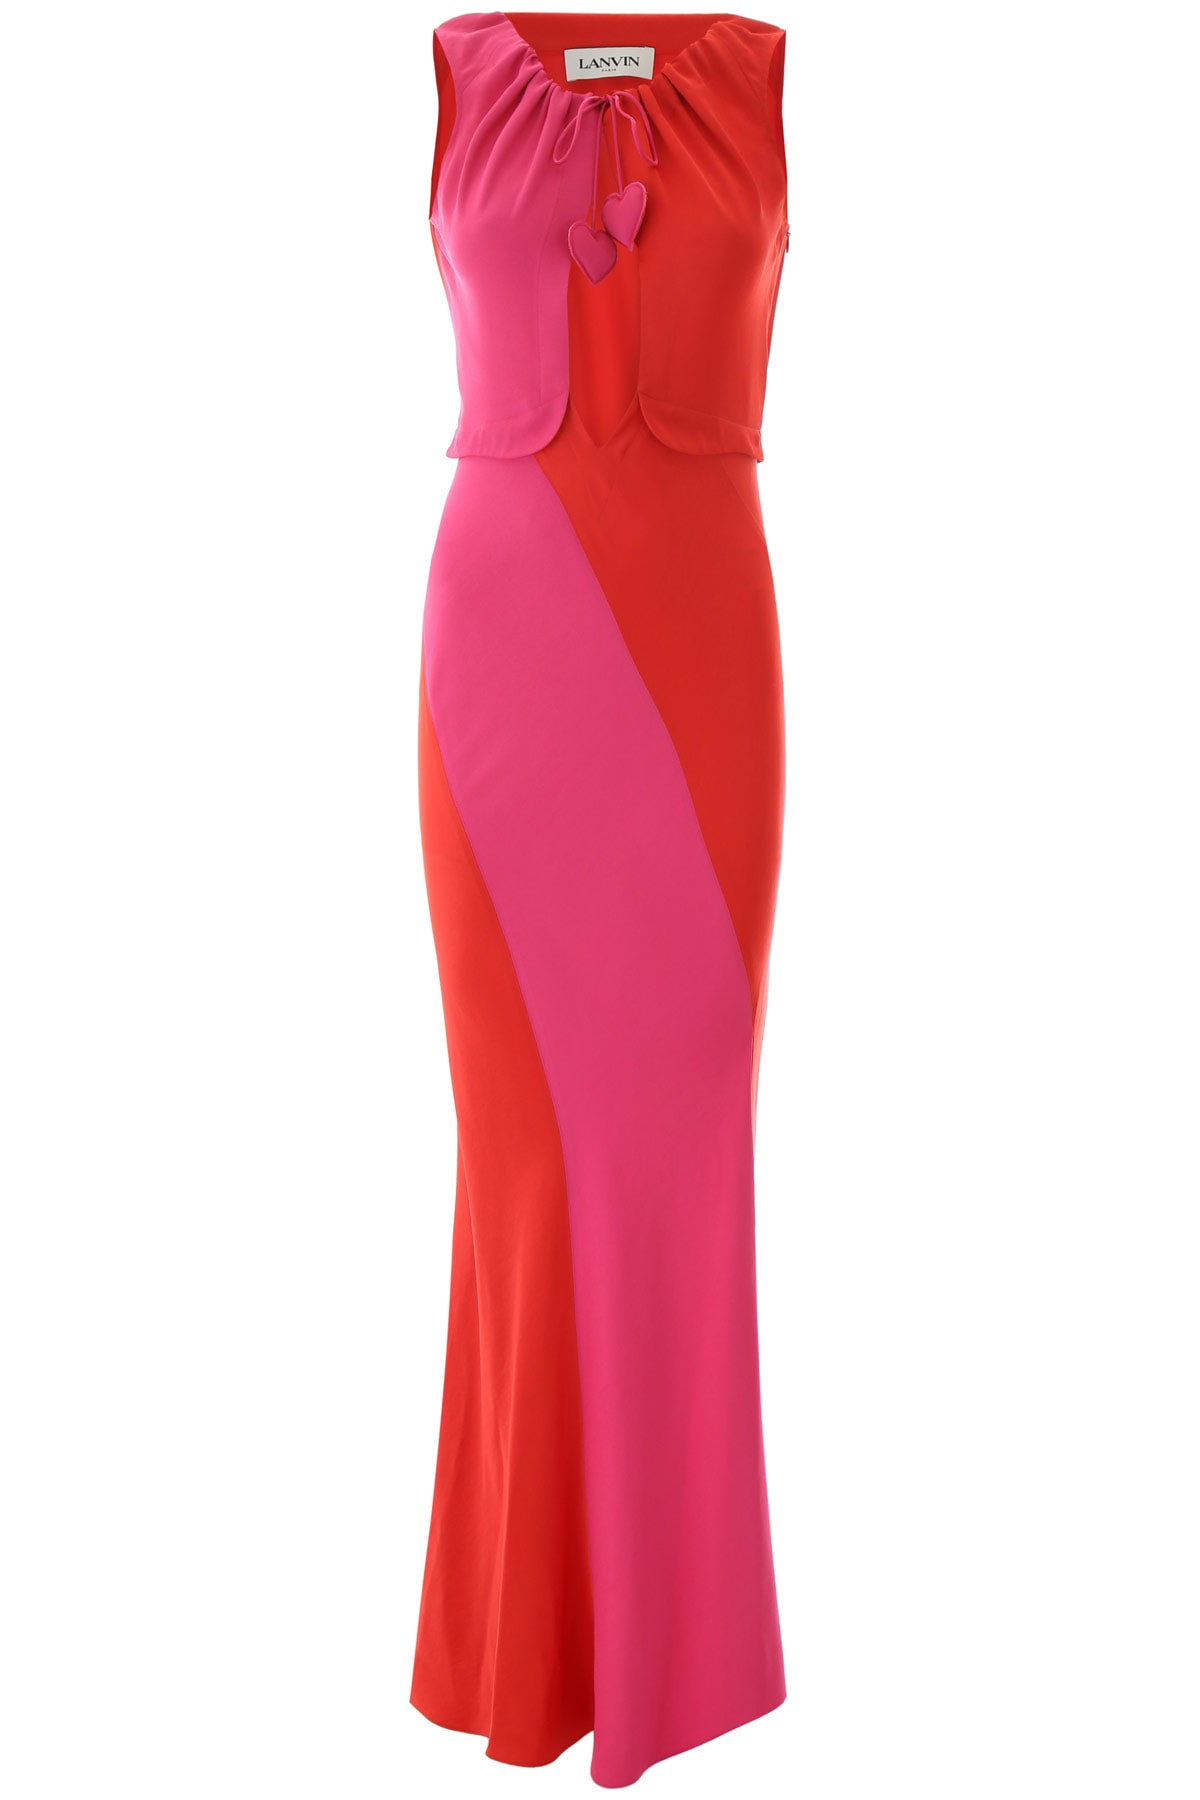 Buy Lanvin Two-coloured Maxi Dress online, shop Lanvin with free shipping